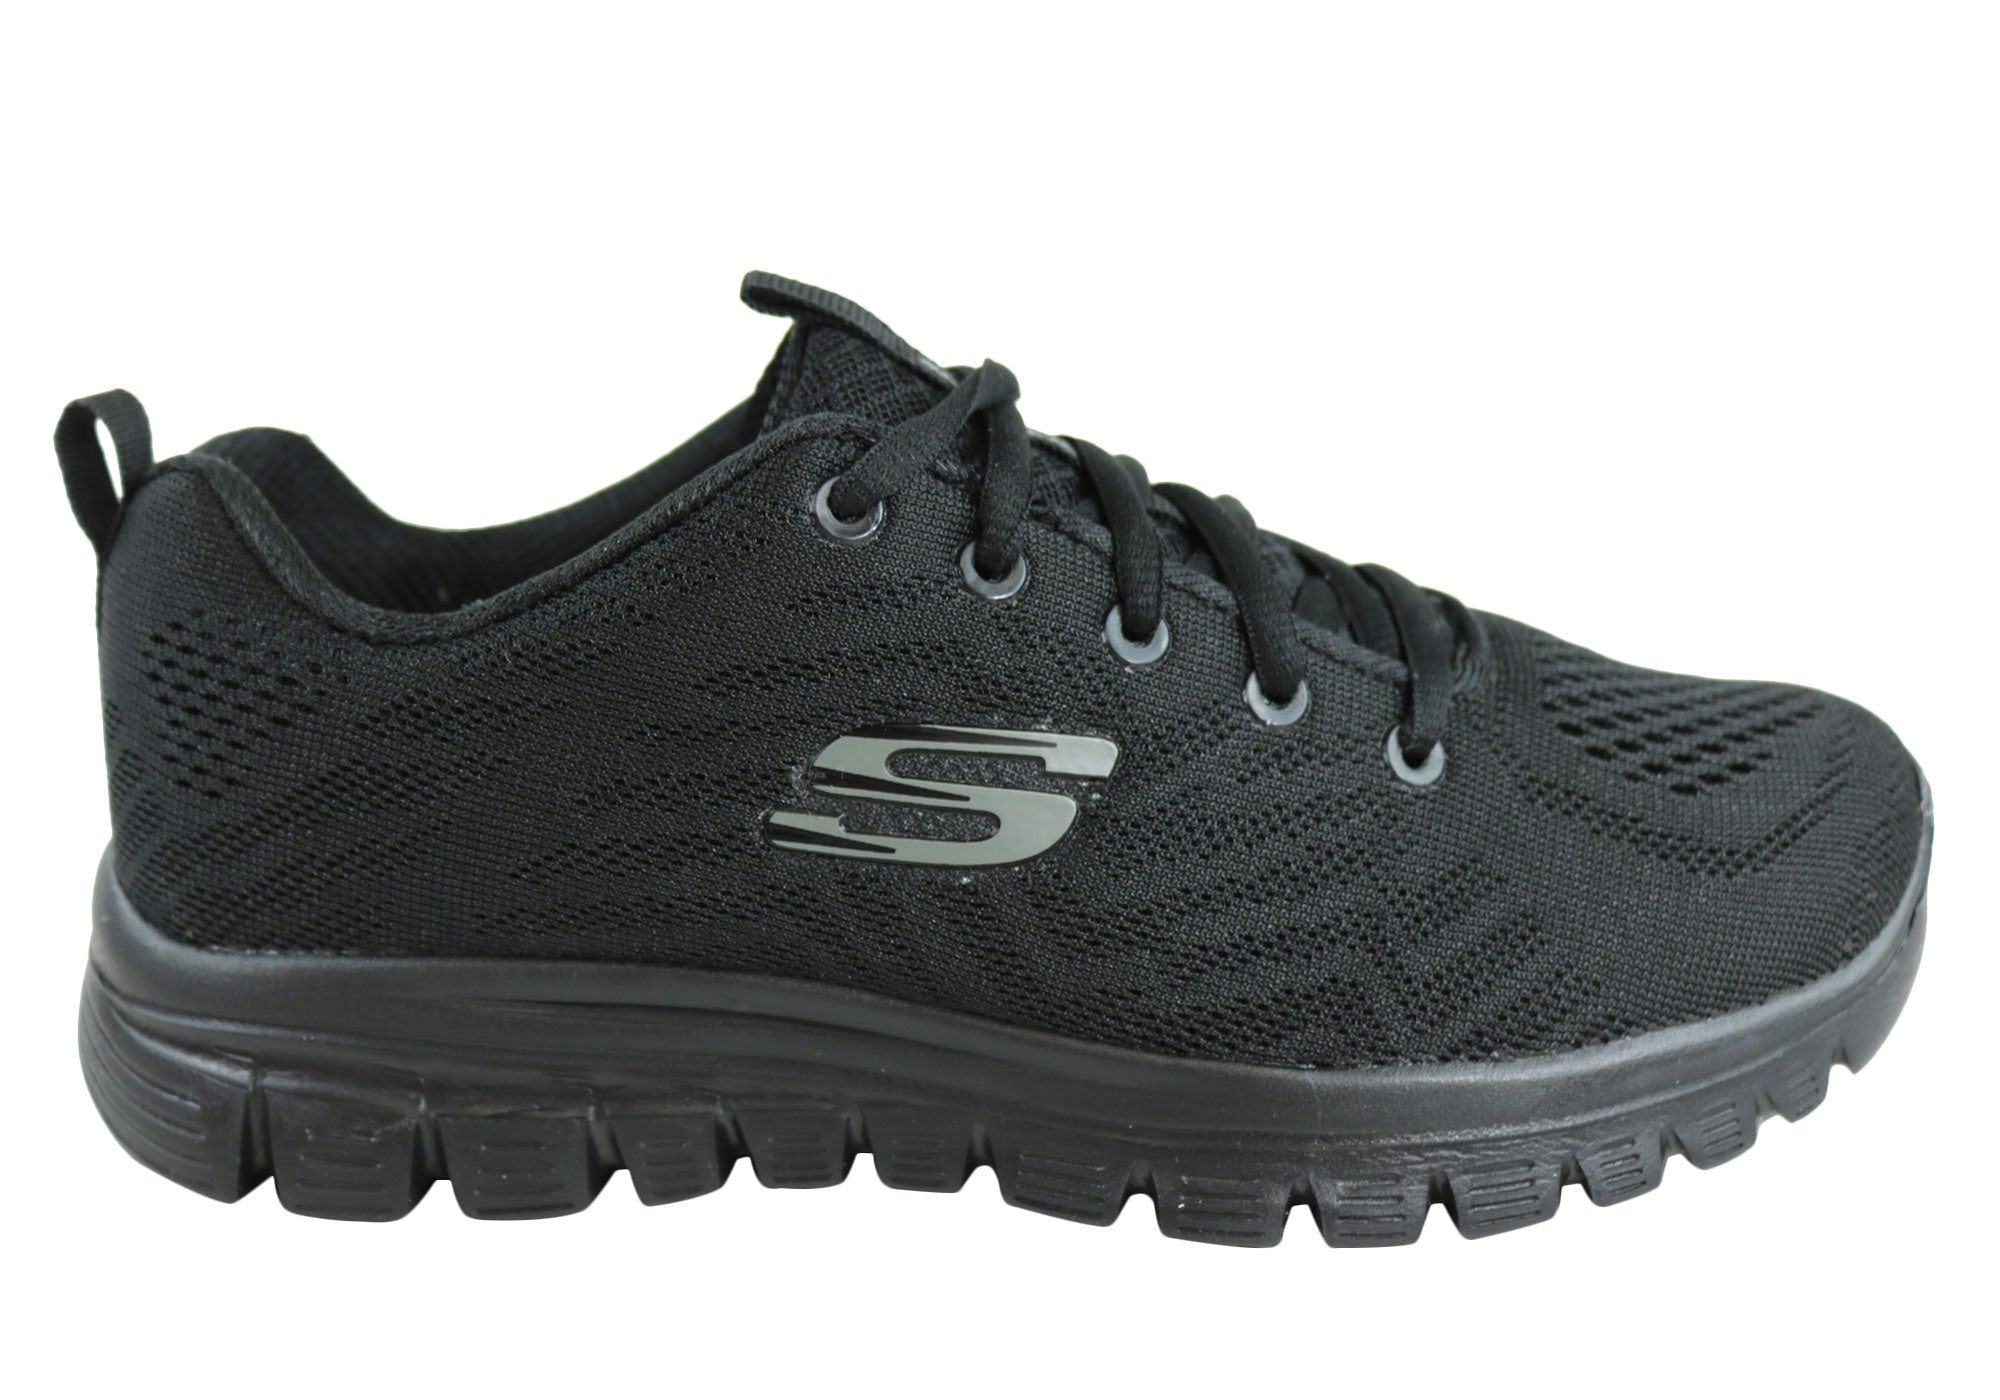 4886fb7e92b5 Skechers Womens Graceful Get Connected Memory Foam Lace Up Shoes ...